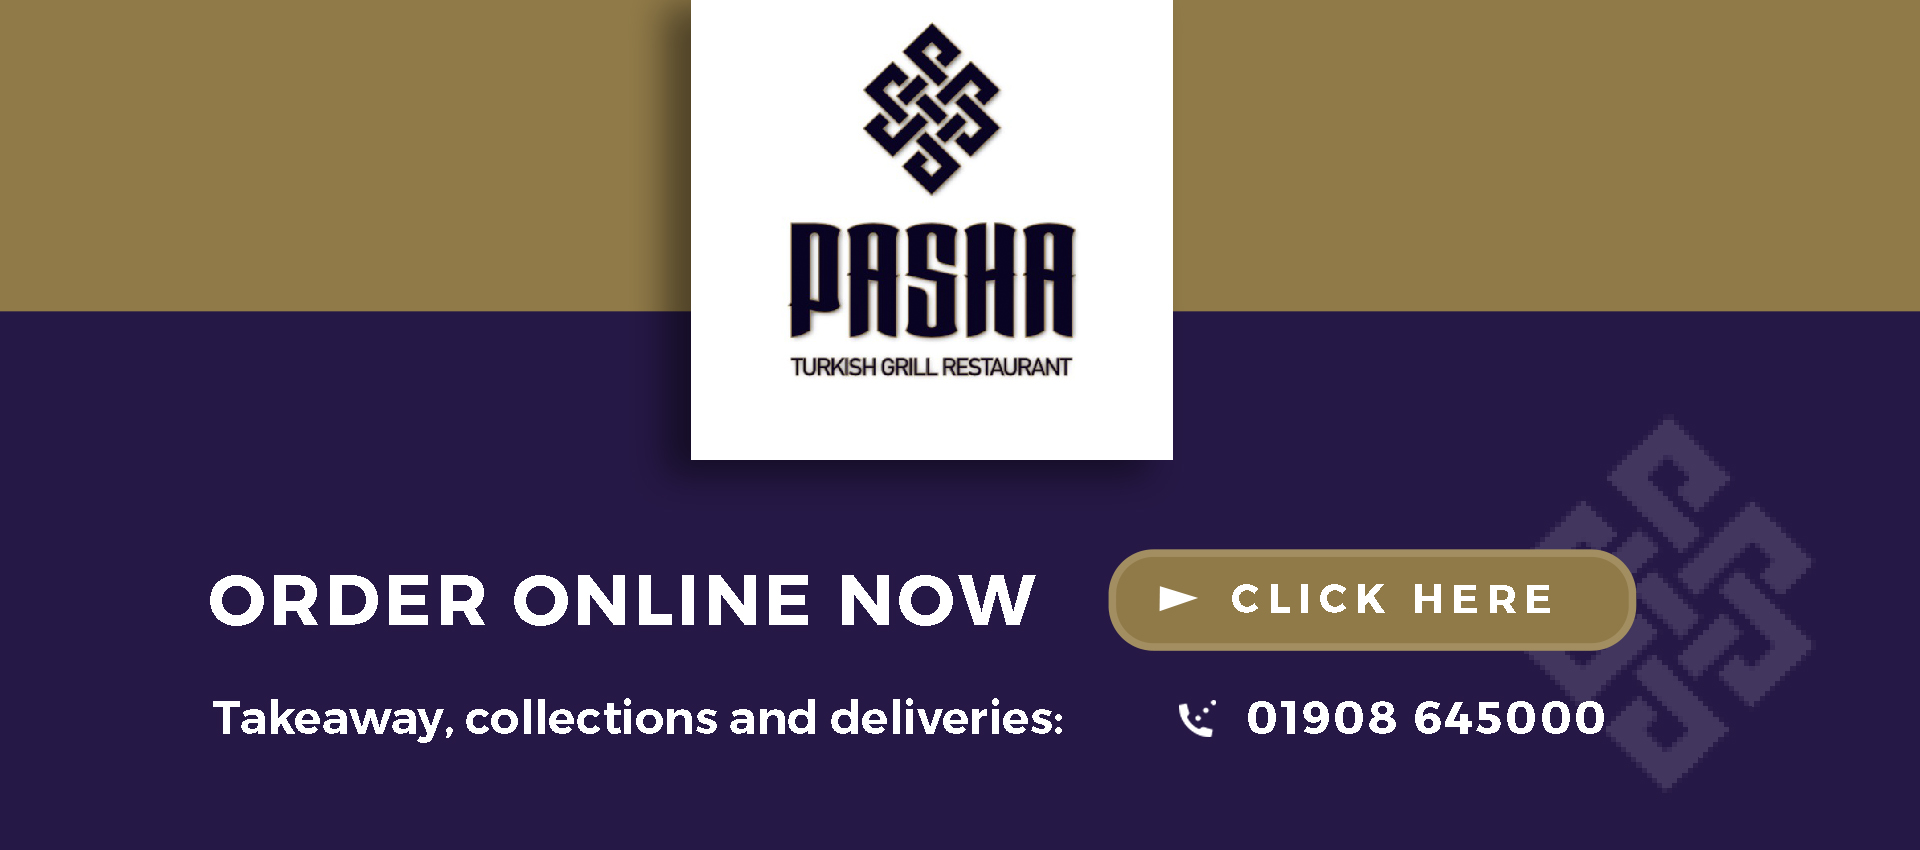 Order from Pasha Online Now